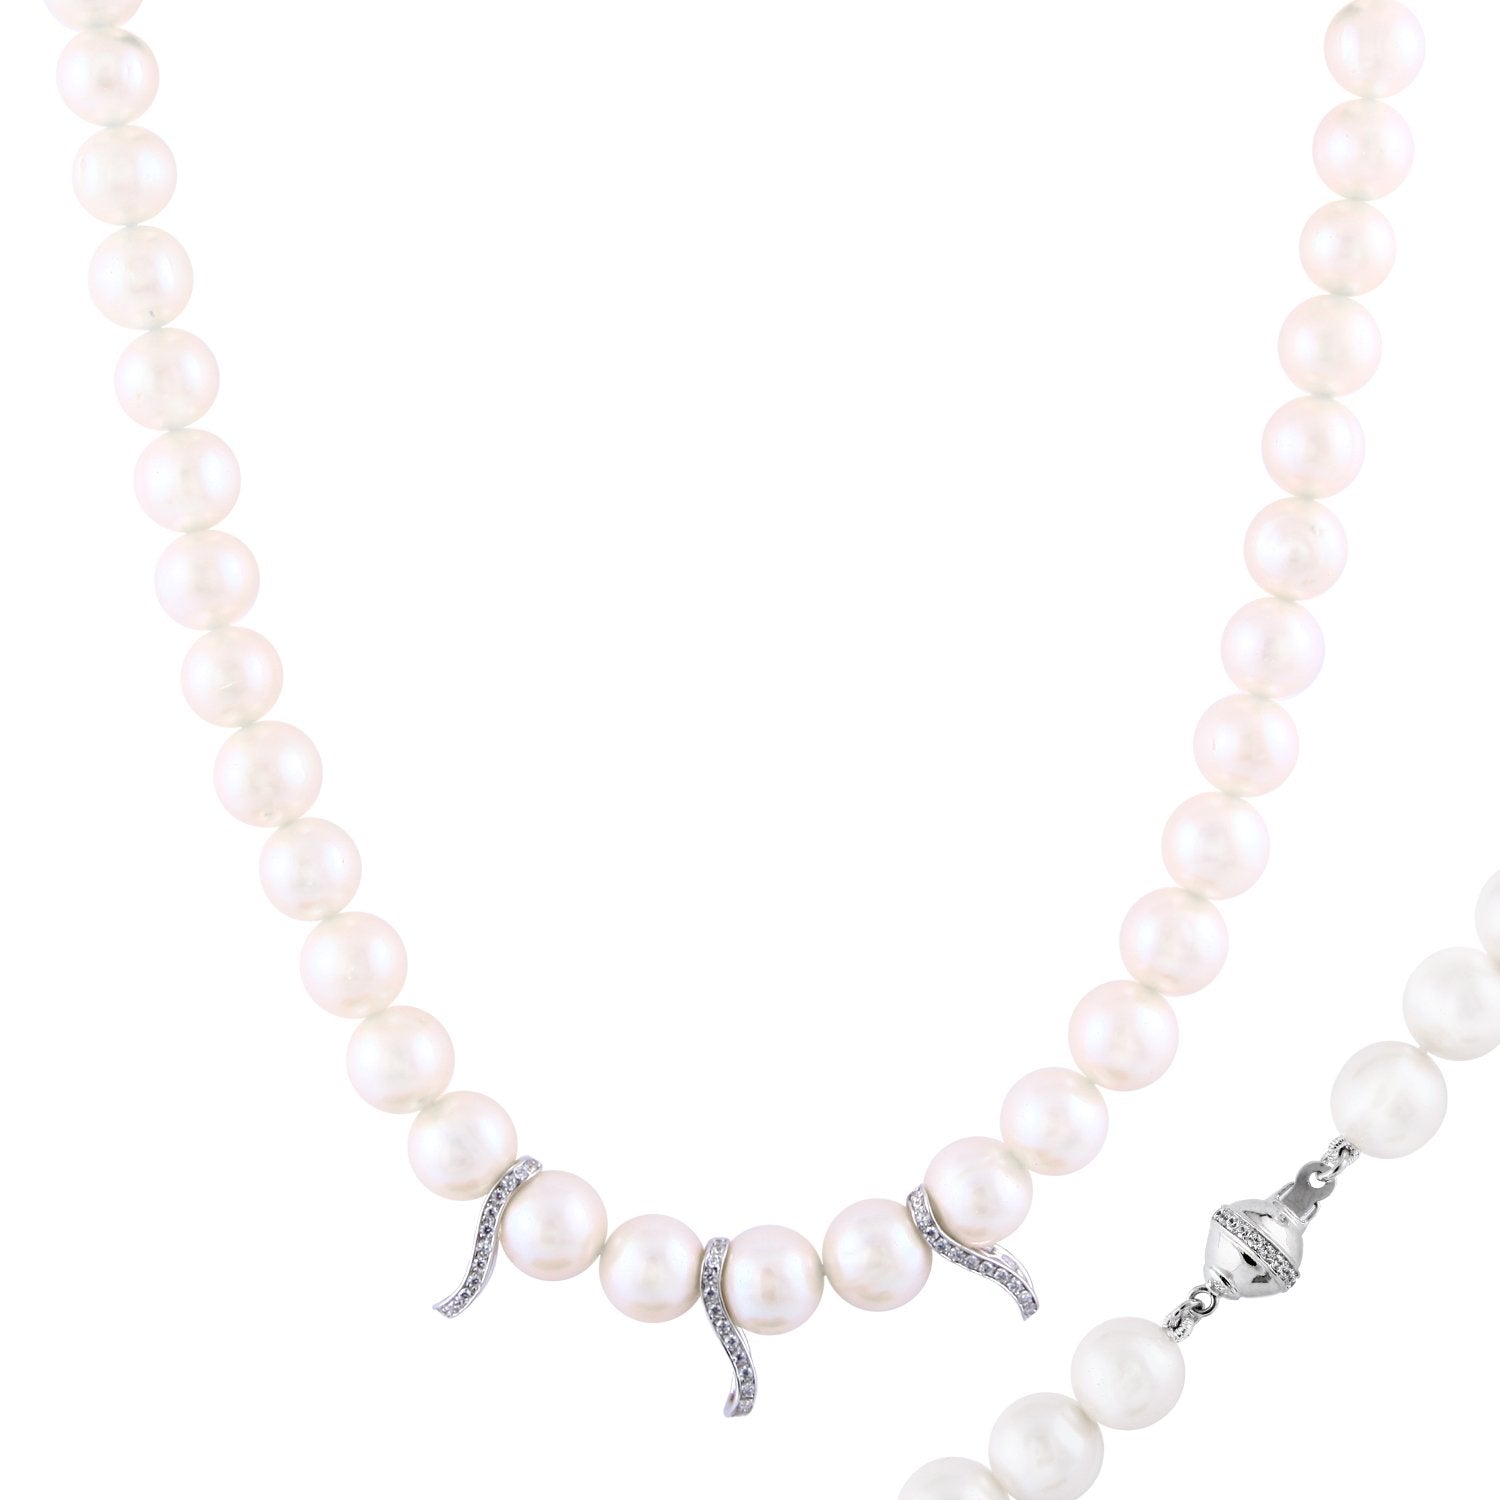 Multifashion White Pearl Necklace